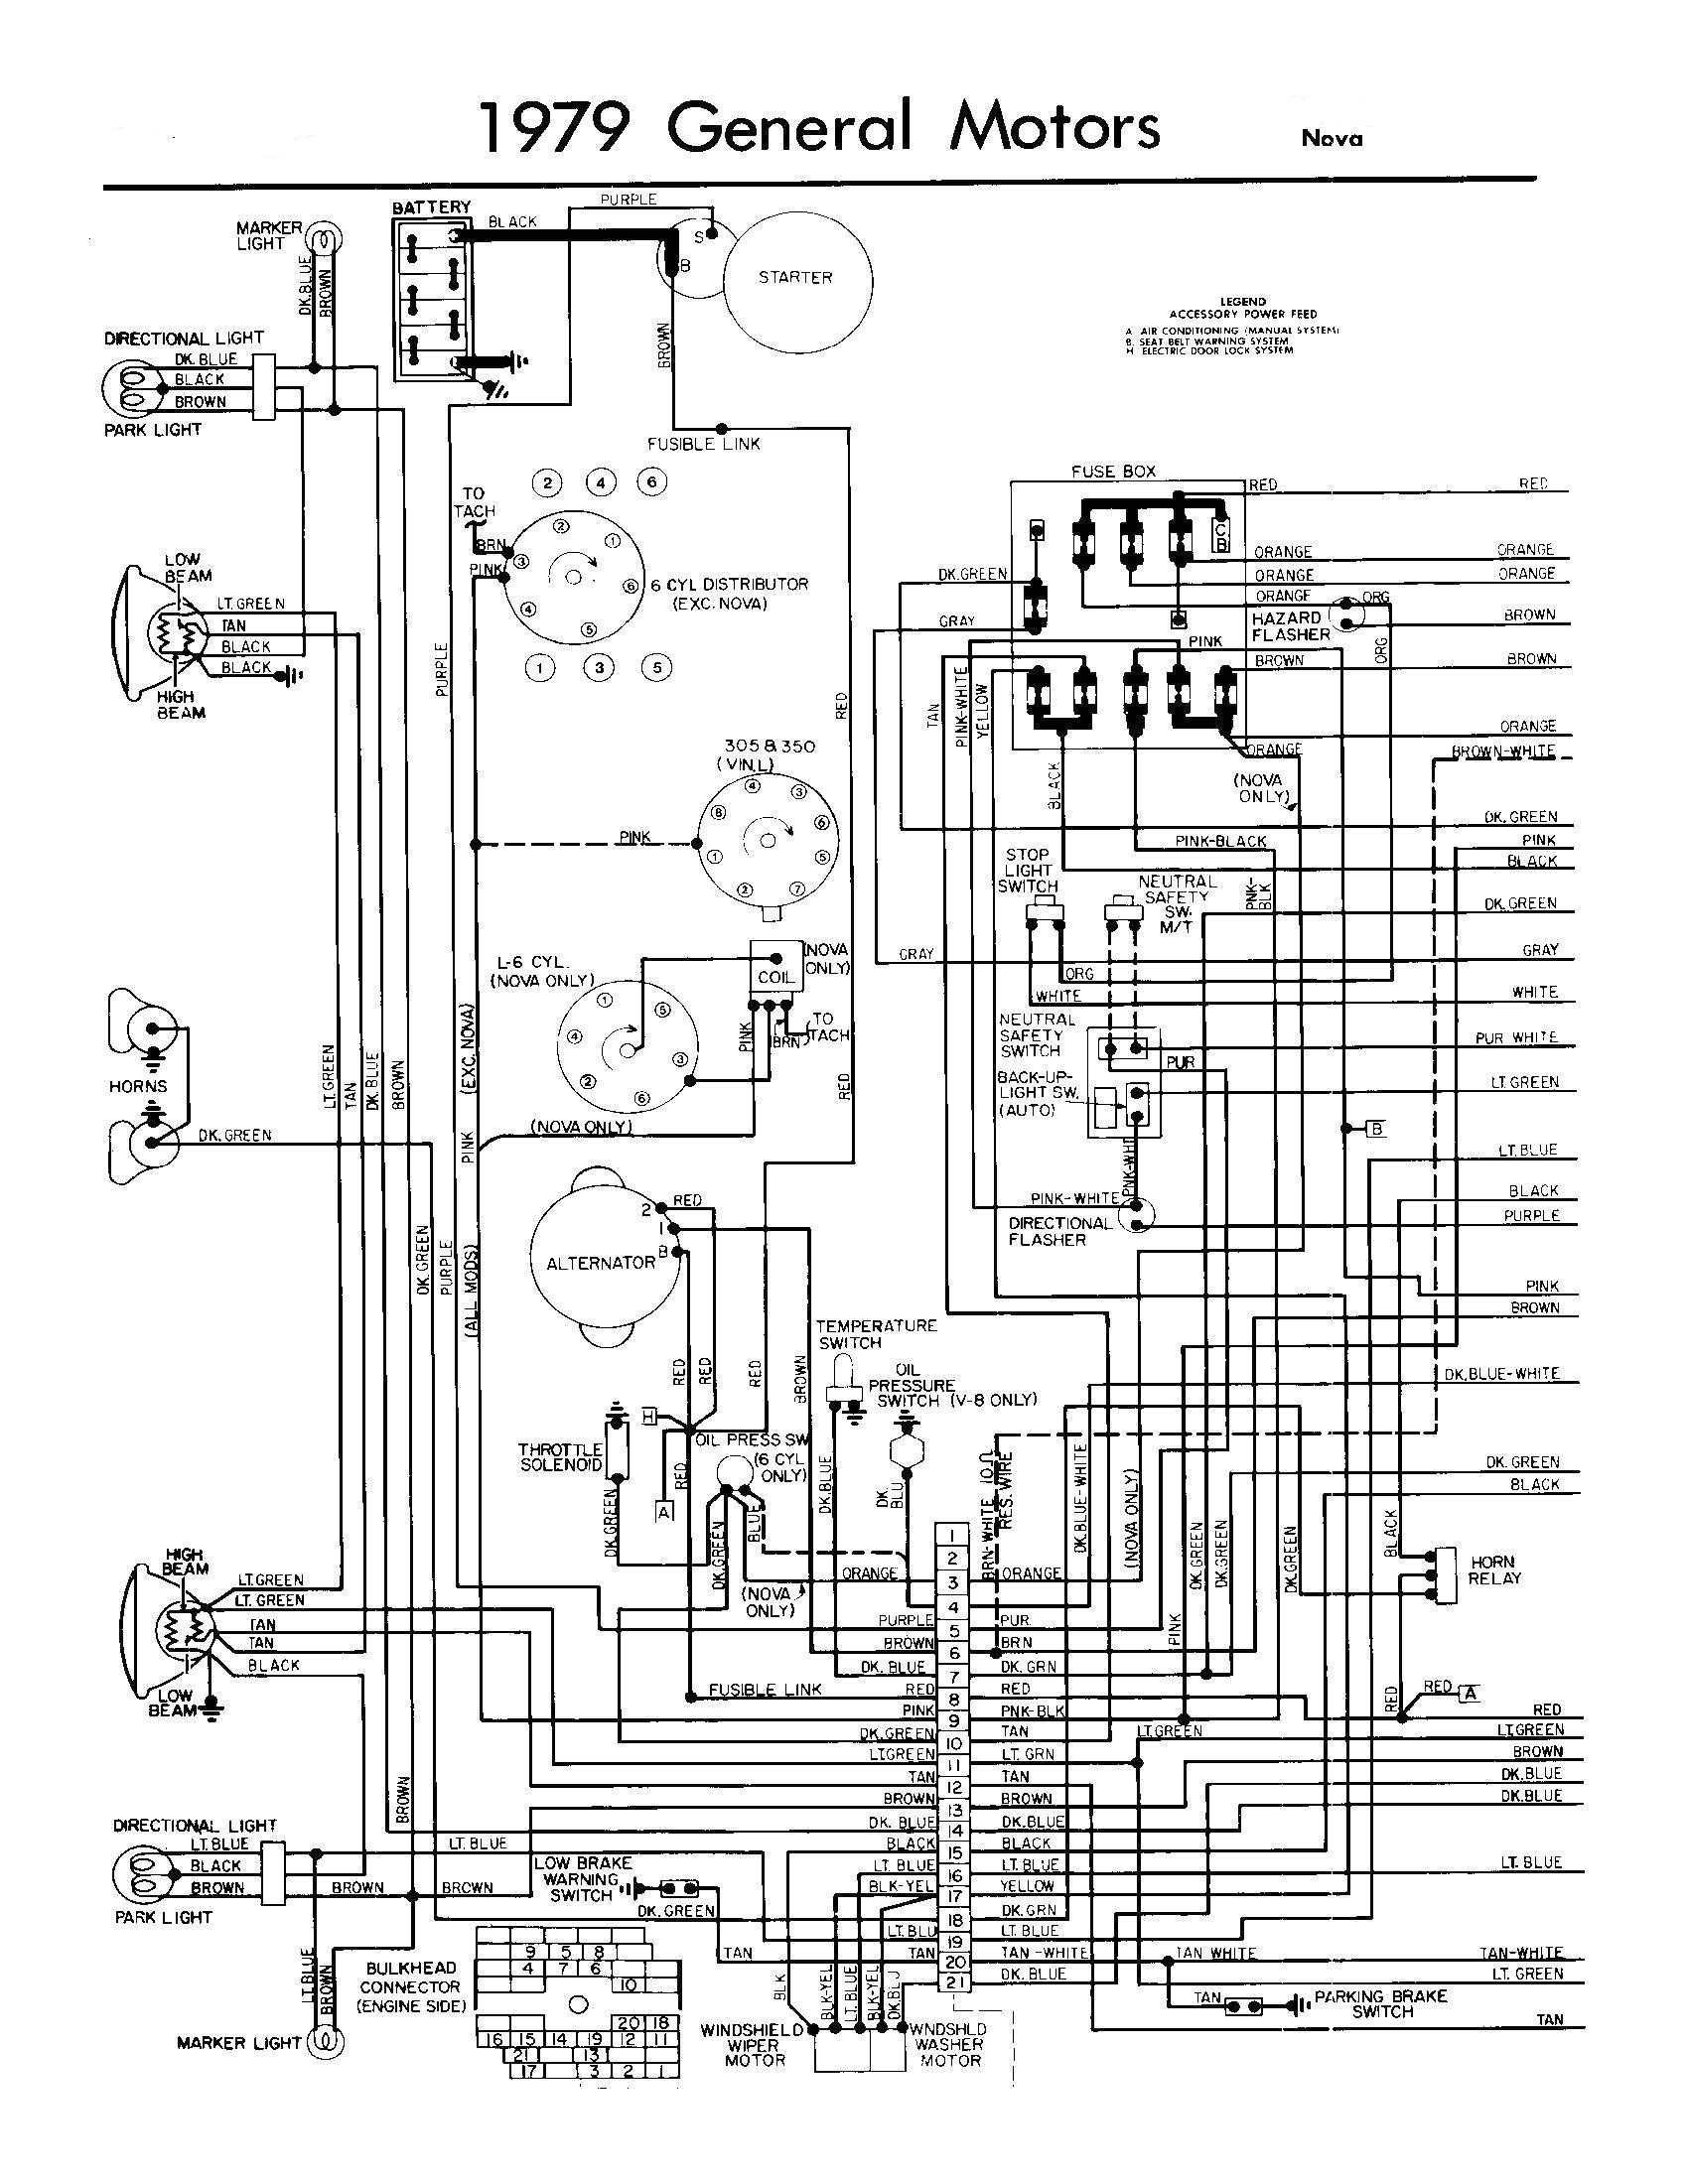 gm windshield wipers and solid state timers schematic wiring gm 5 wire wiper schematic my wiring